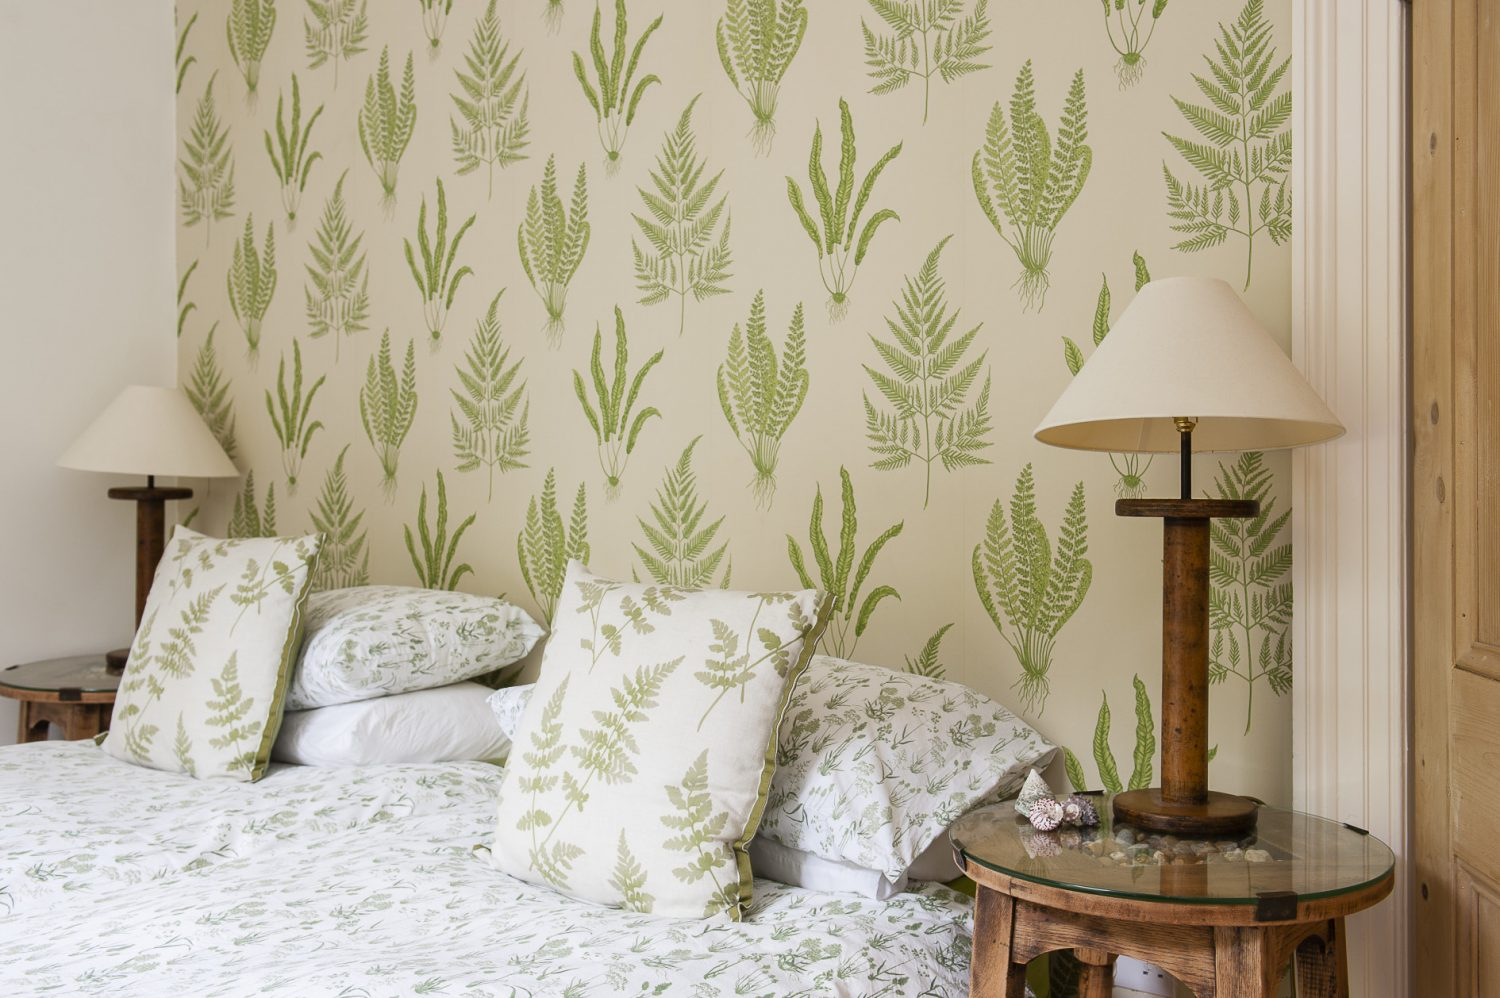 The twin bedroom features a fern theme, inspired by the vegetation in the garden it overlooks